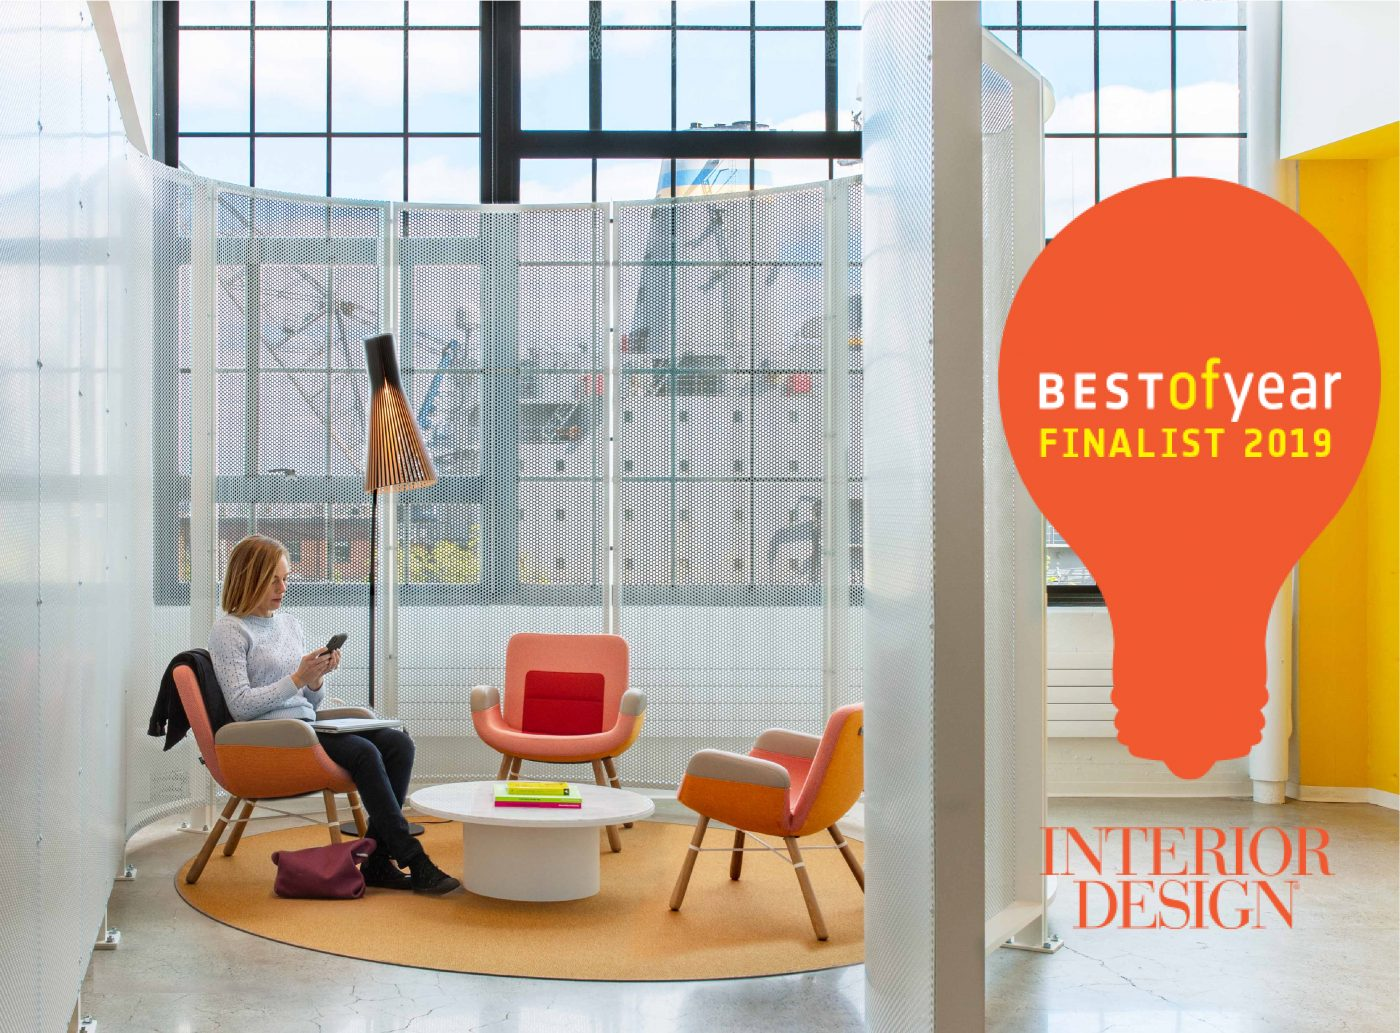 Our Autodesk Boston Workspace Is An Interior Design Best Of Year Finalist Utile Architecture Planning